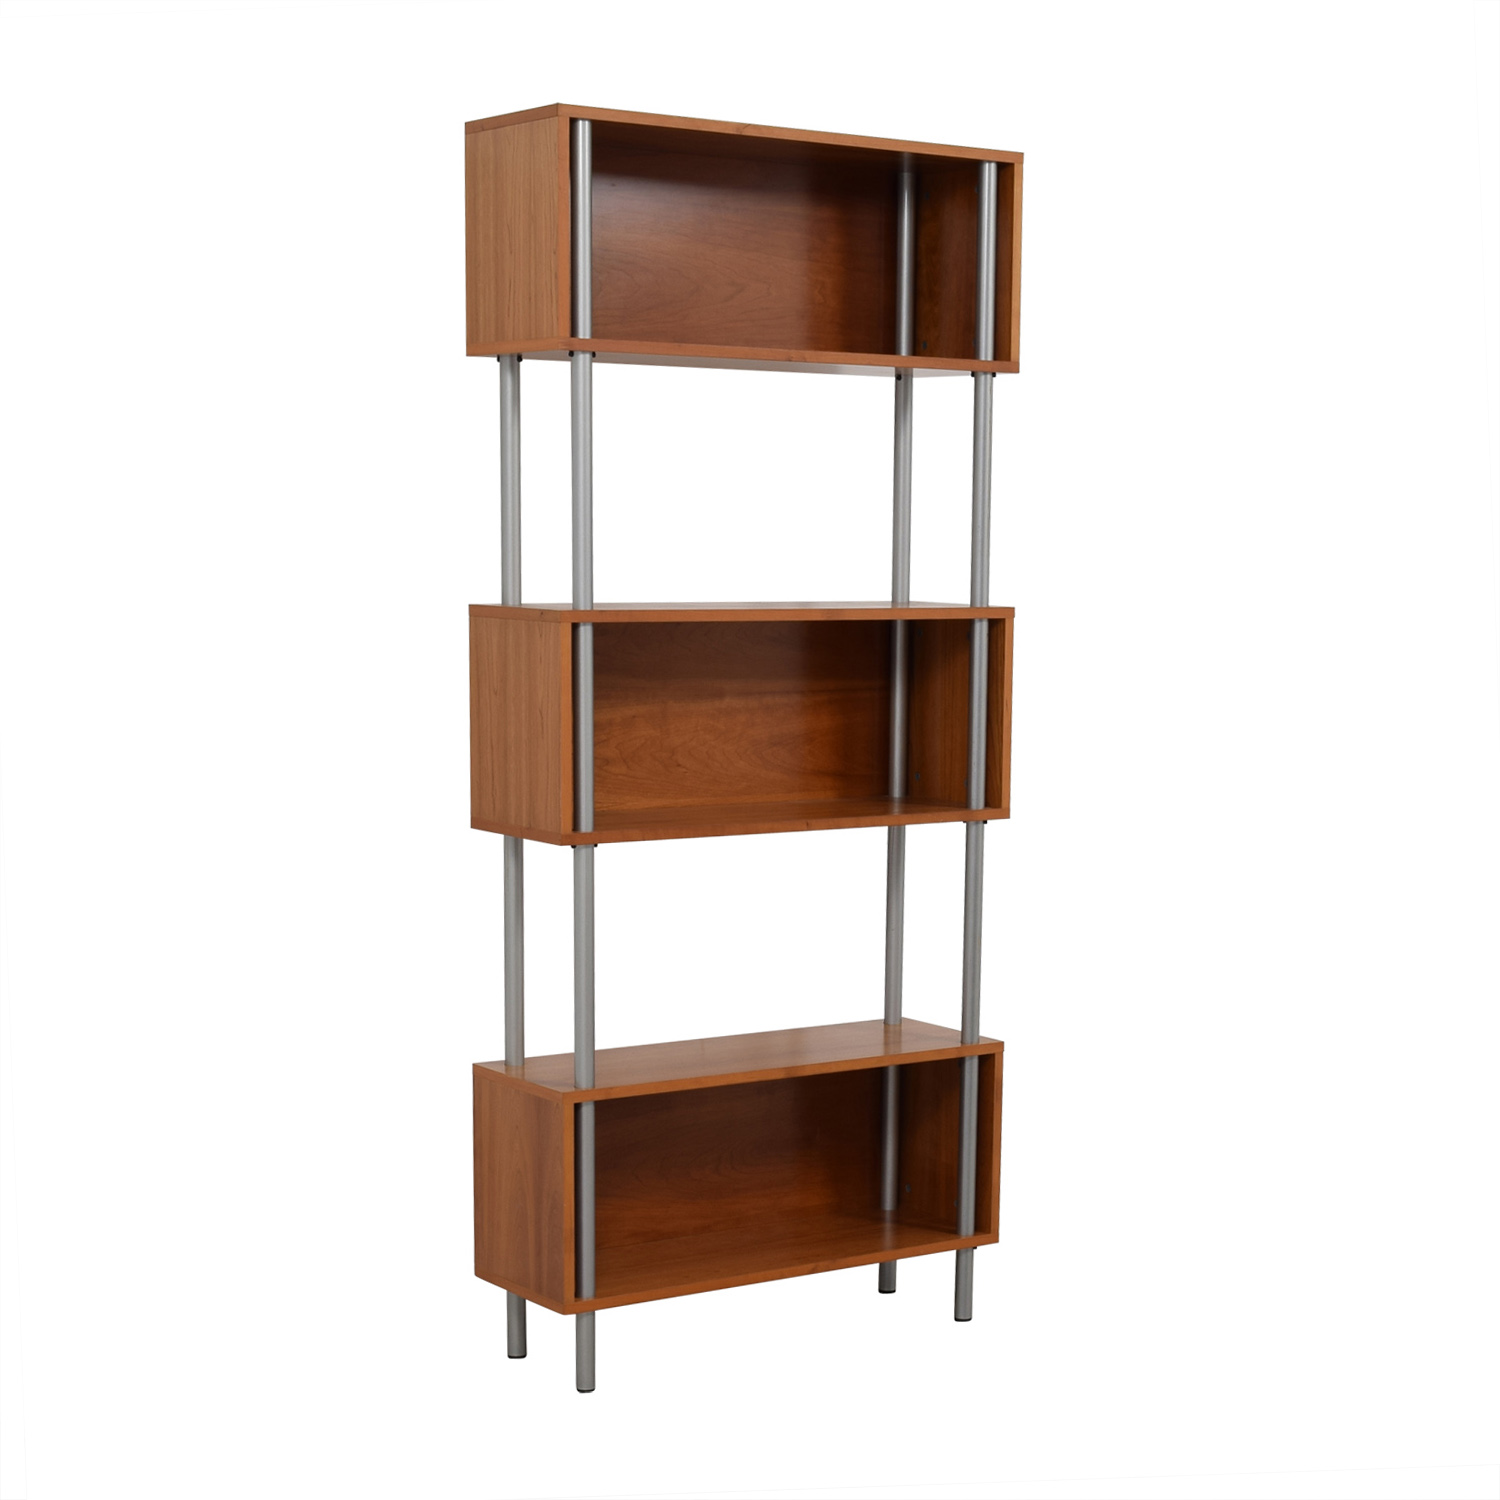 Modern Three-Tiered Bookshelf Storage